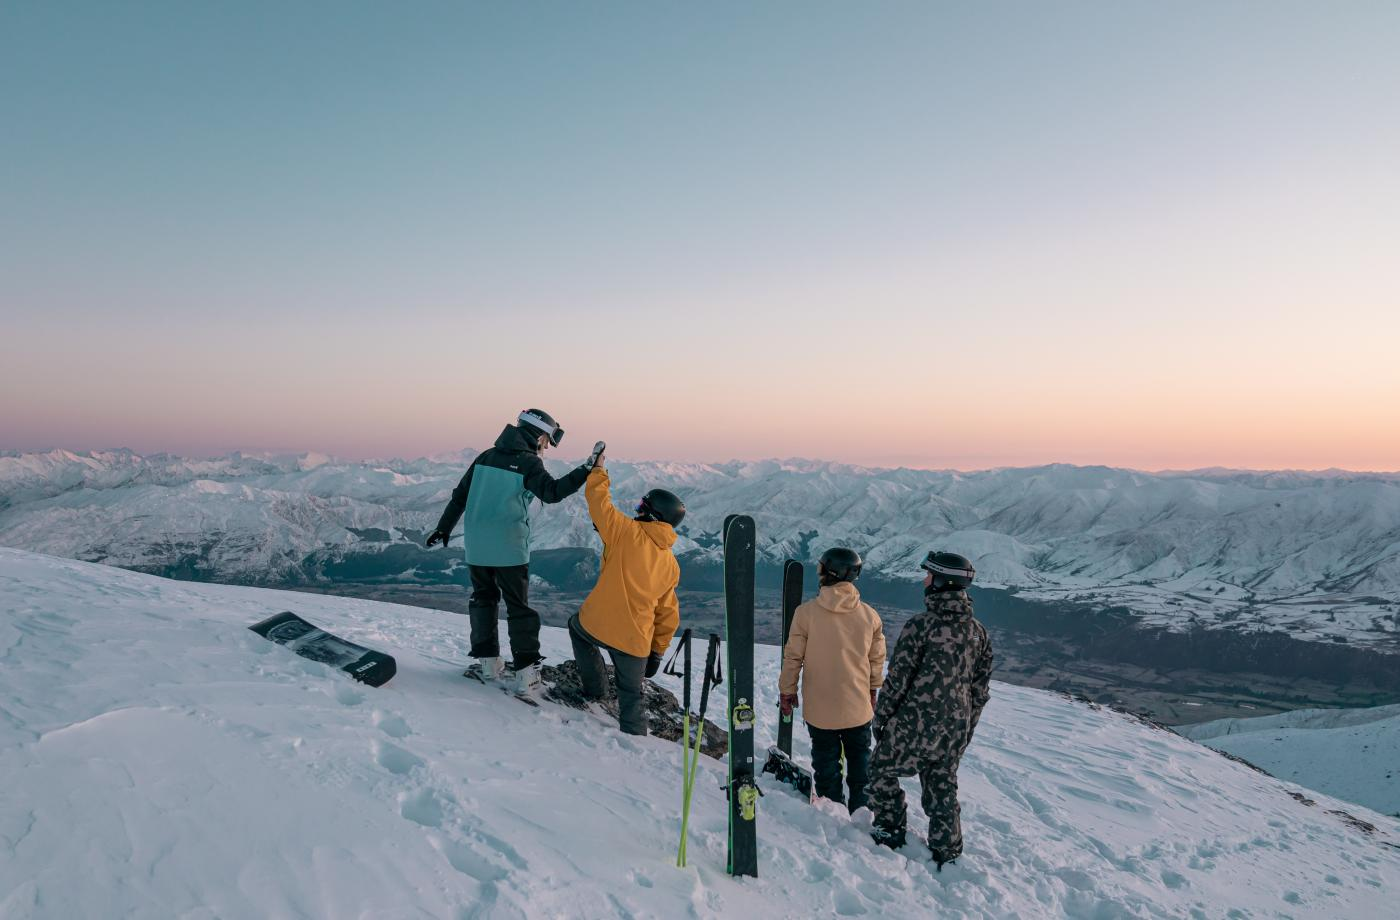 Group of skiers and snowboarders at the top of The Remarkables